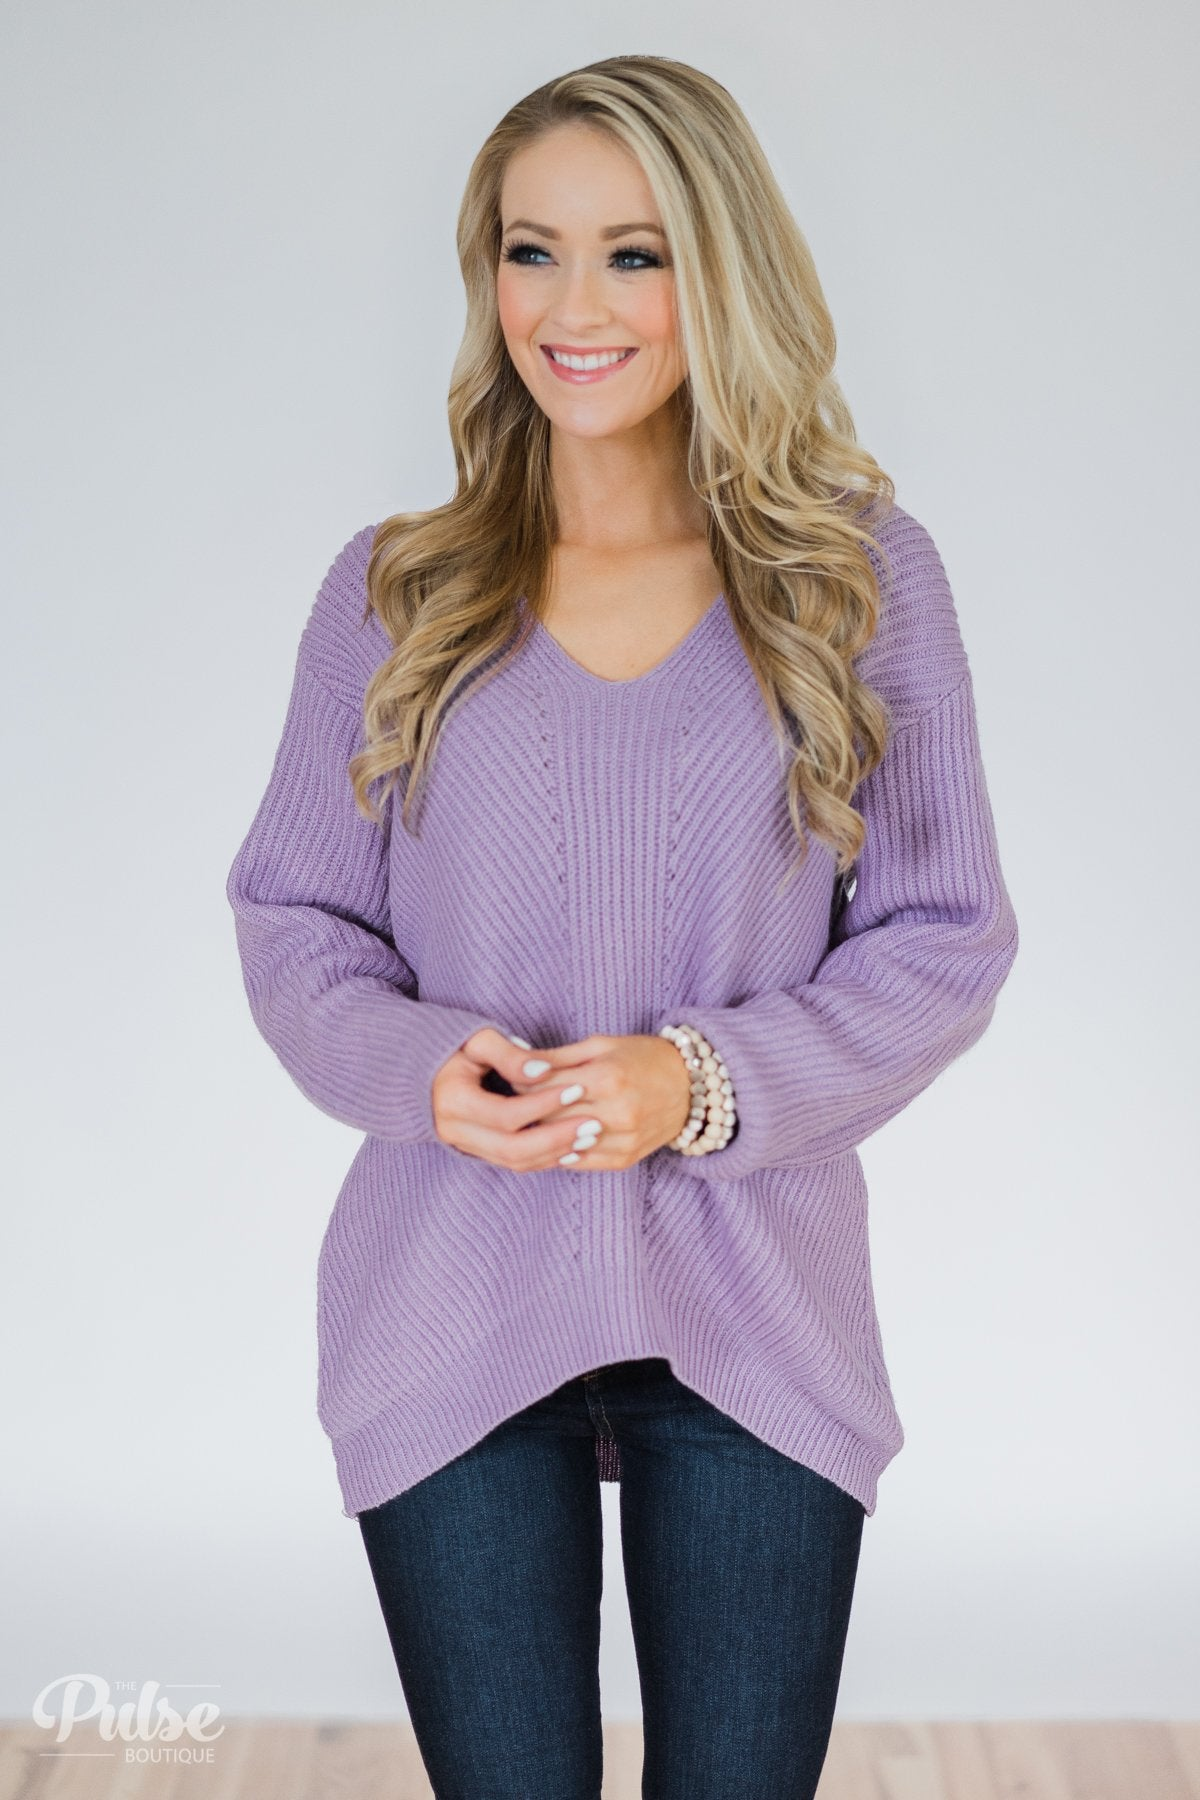 Lavender Fields Knitted Sweater